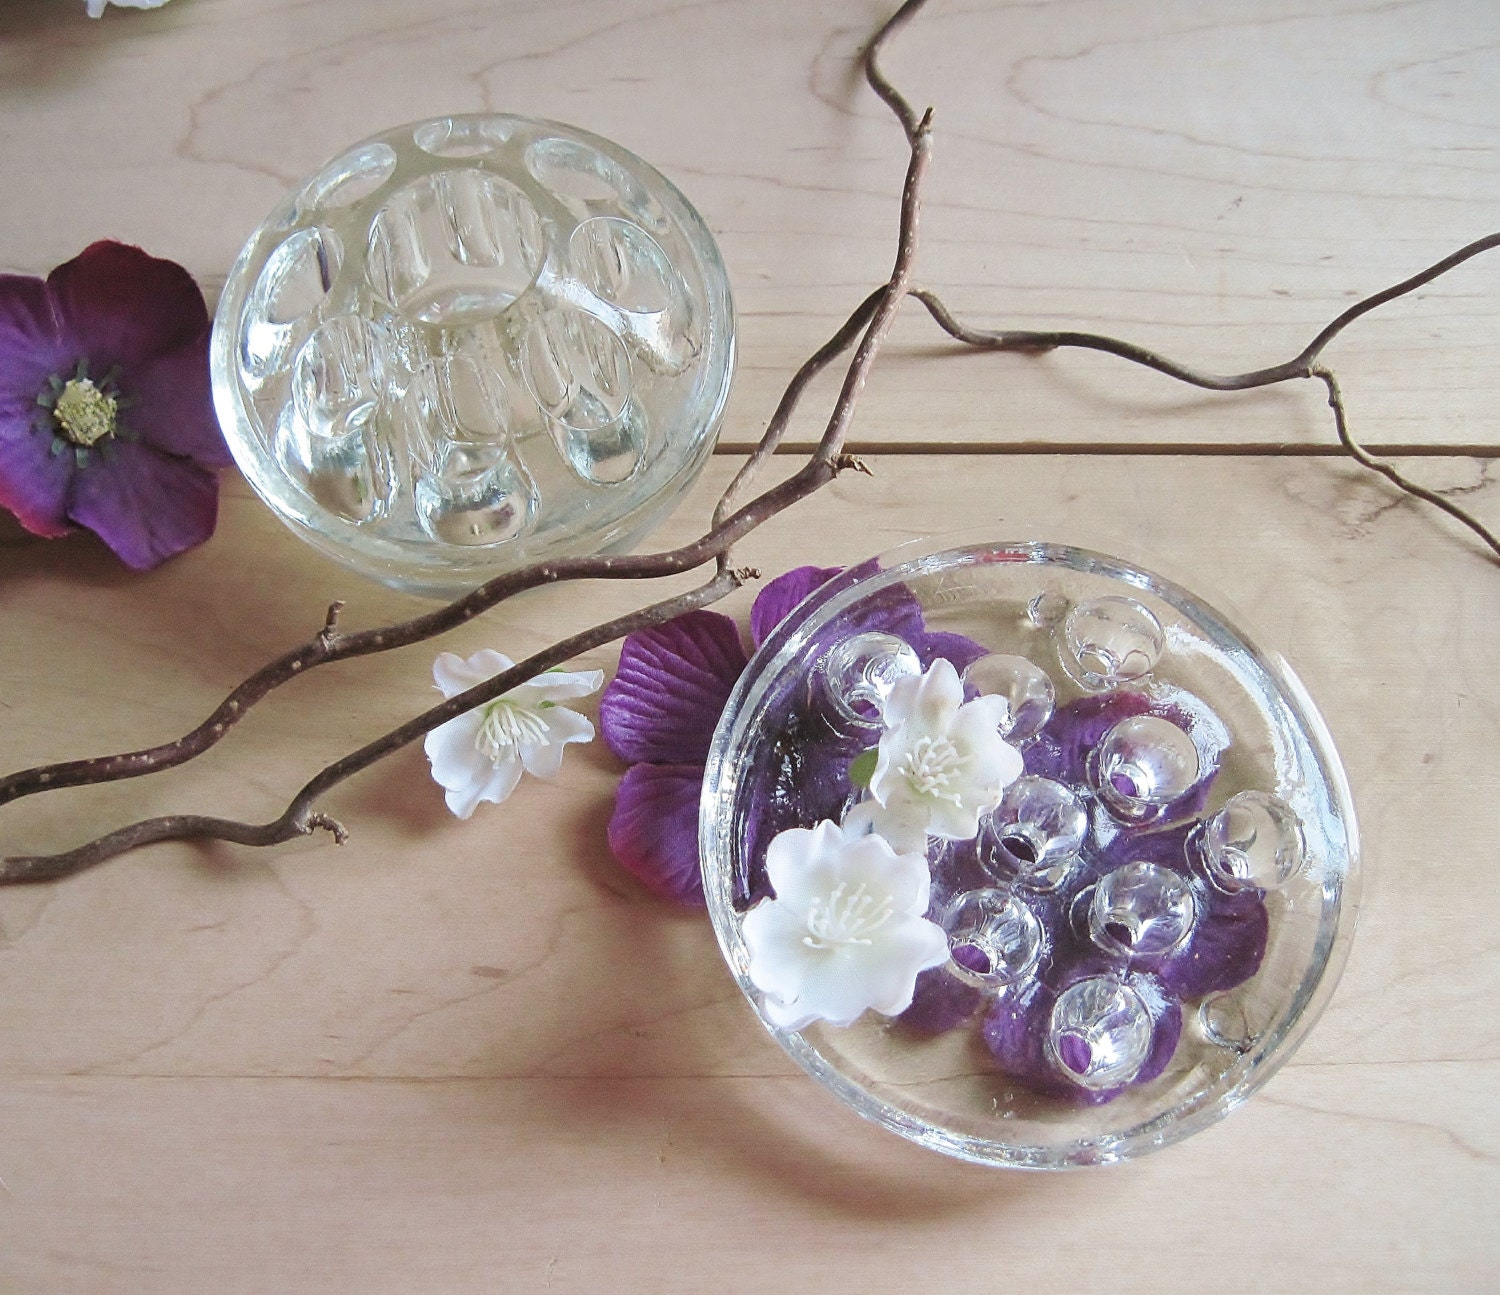 Vintage glass flower frogs ~ Floral/Garden Collectible~Sucker,Balloon, Fairy Wand,Pen Holders, Branch Display Paper Weight,Party Table Décor - FoxberryHill